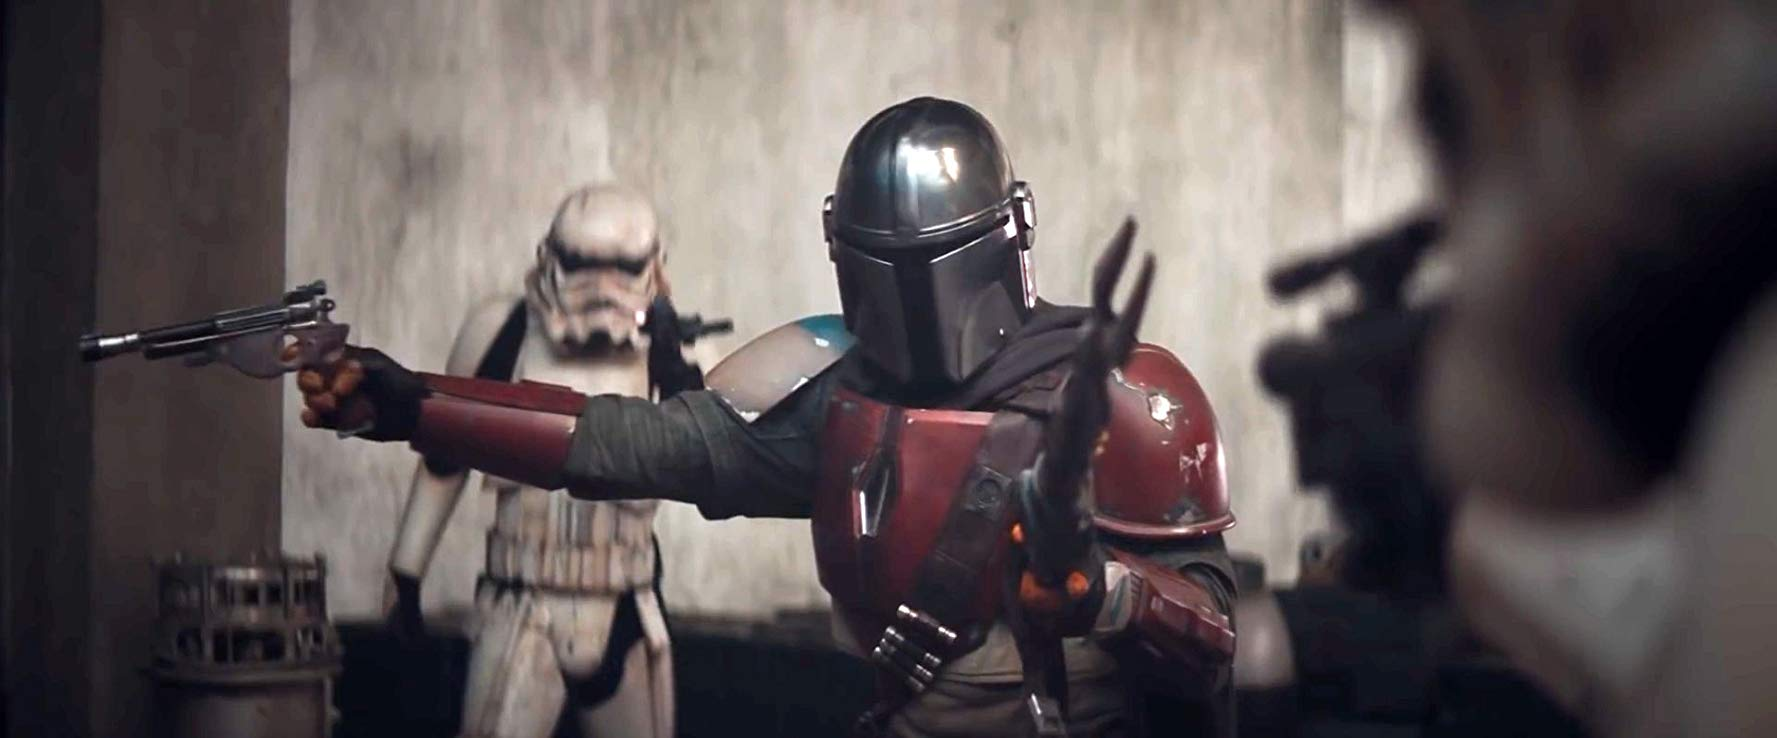 The Mandalorian temporada 1 reseña